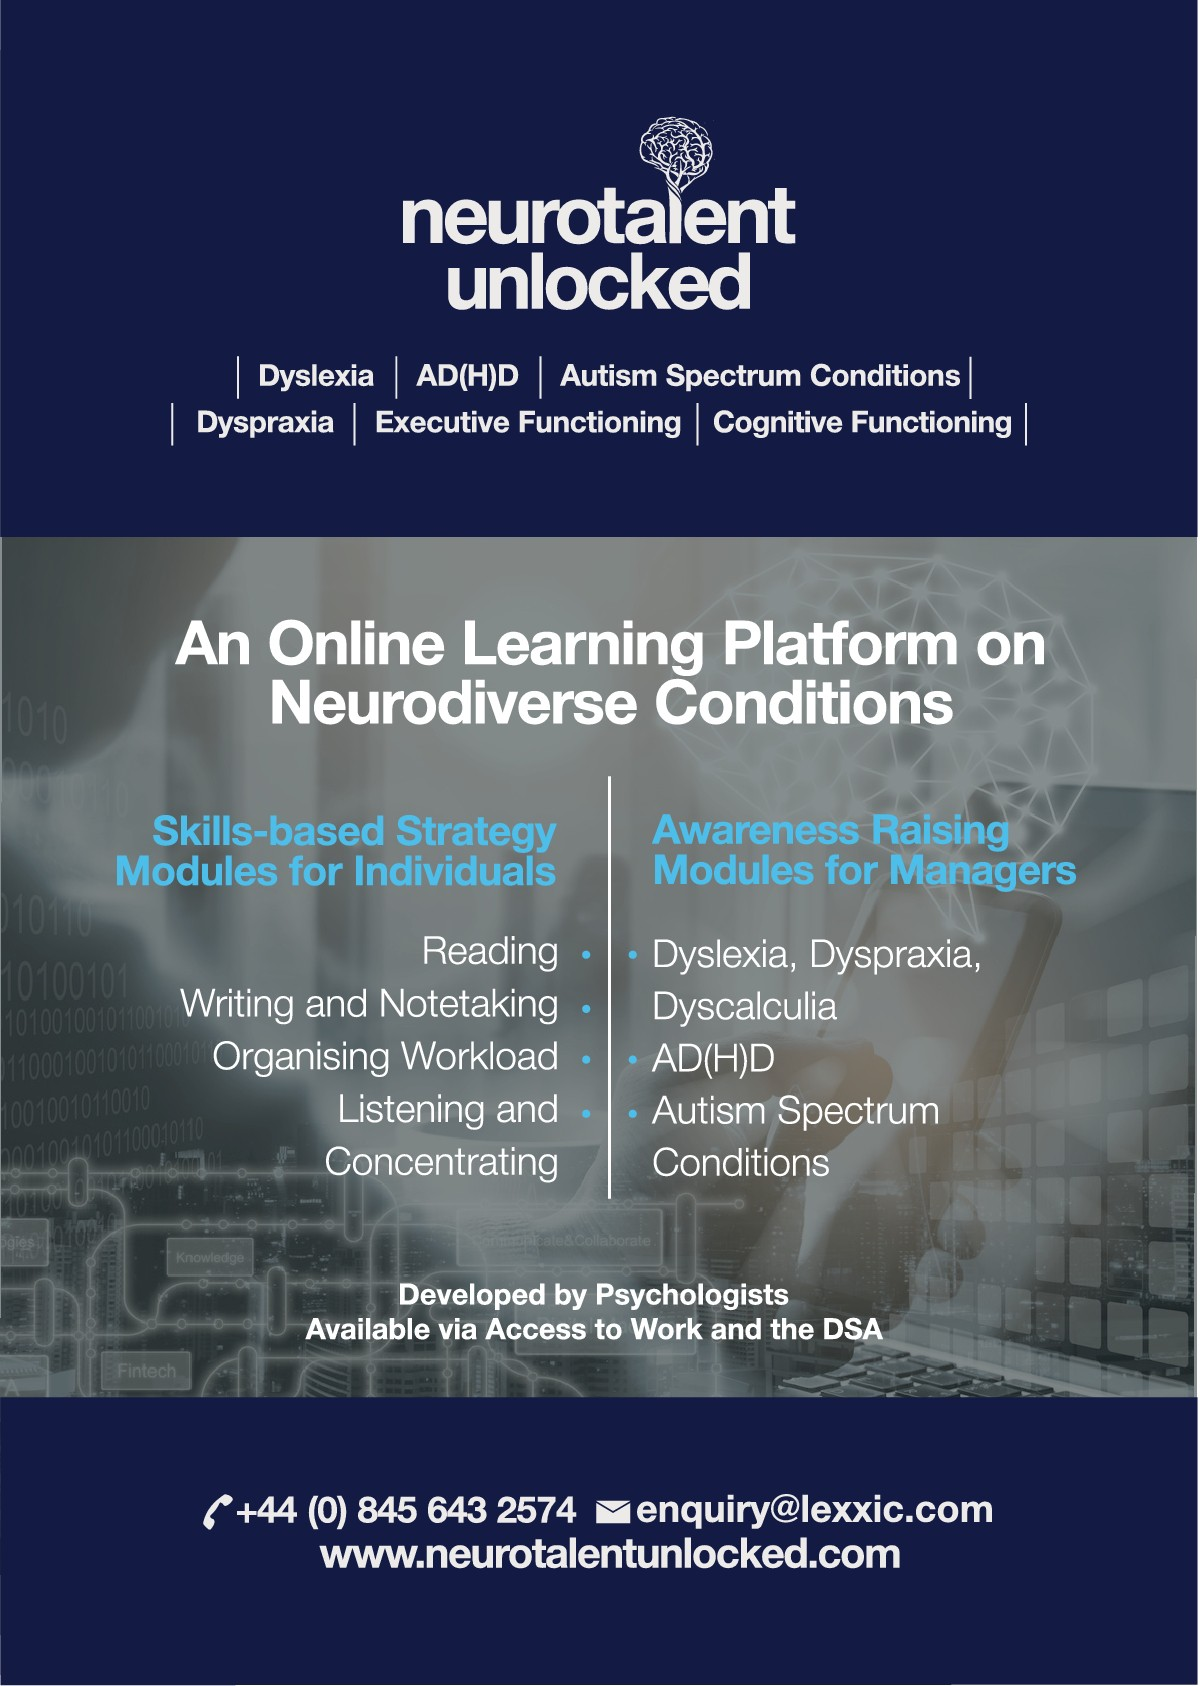 Update our Neurotalent Unlocked Flyer to a two-sided version